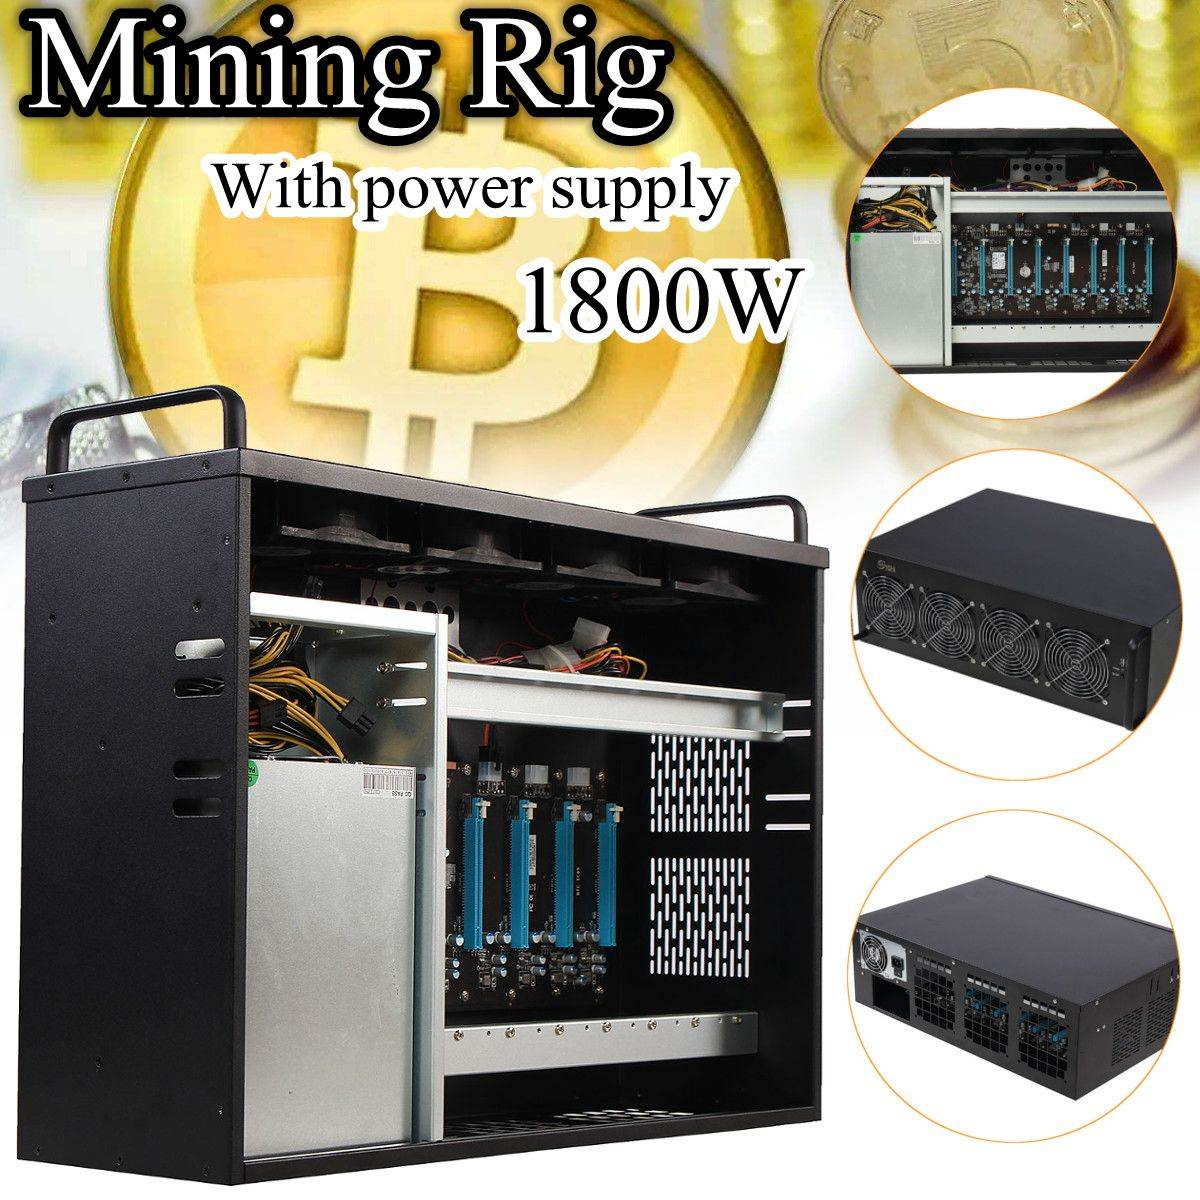 Mining Rig Miner Mining Machine Chassis Mounting BTC IC6S Motherboard Supporting Up To 8 GPU mining rig miner mining machine chassis mounting btc ic6s motherboard supporting up to 8 gpu without power supply